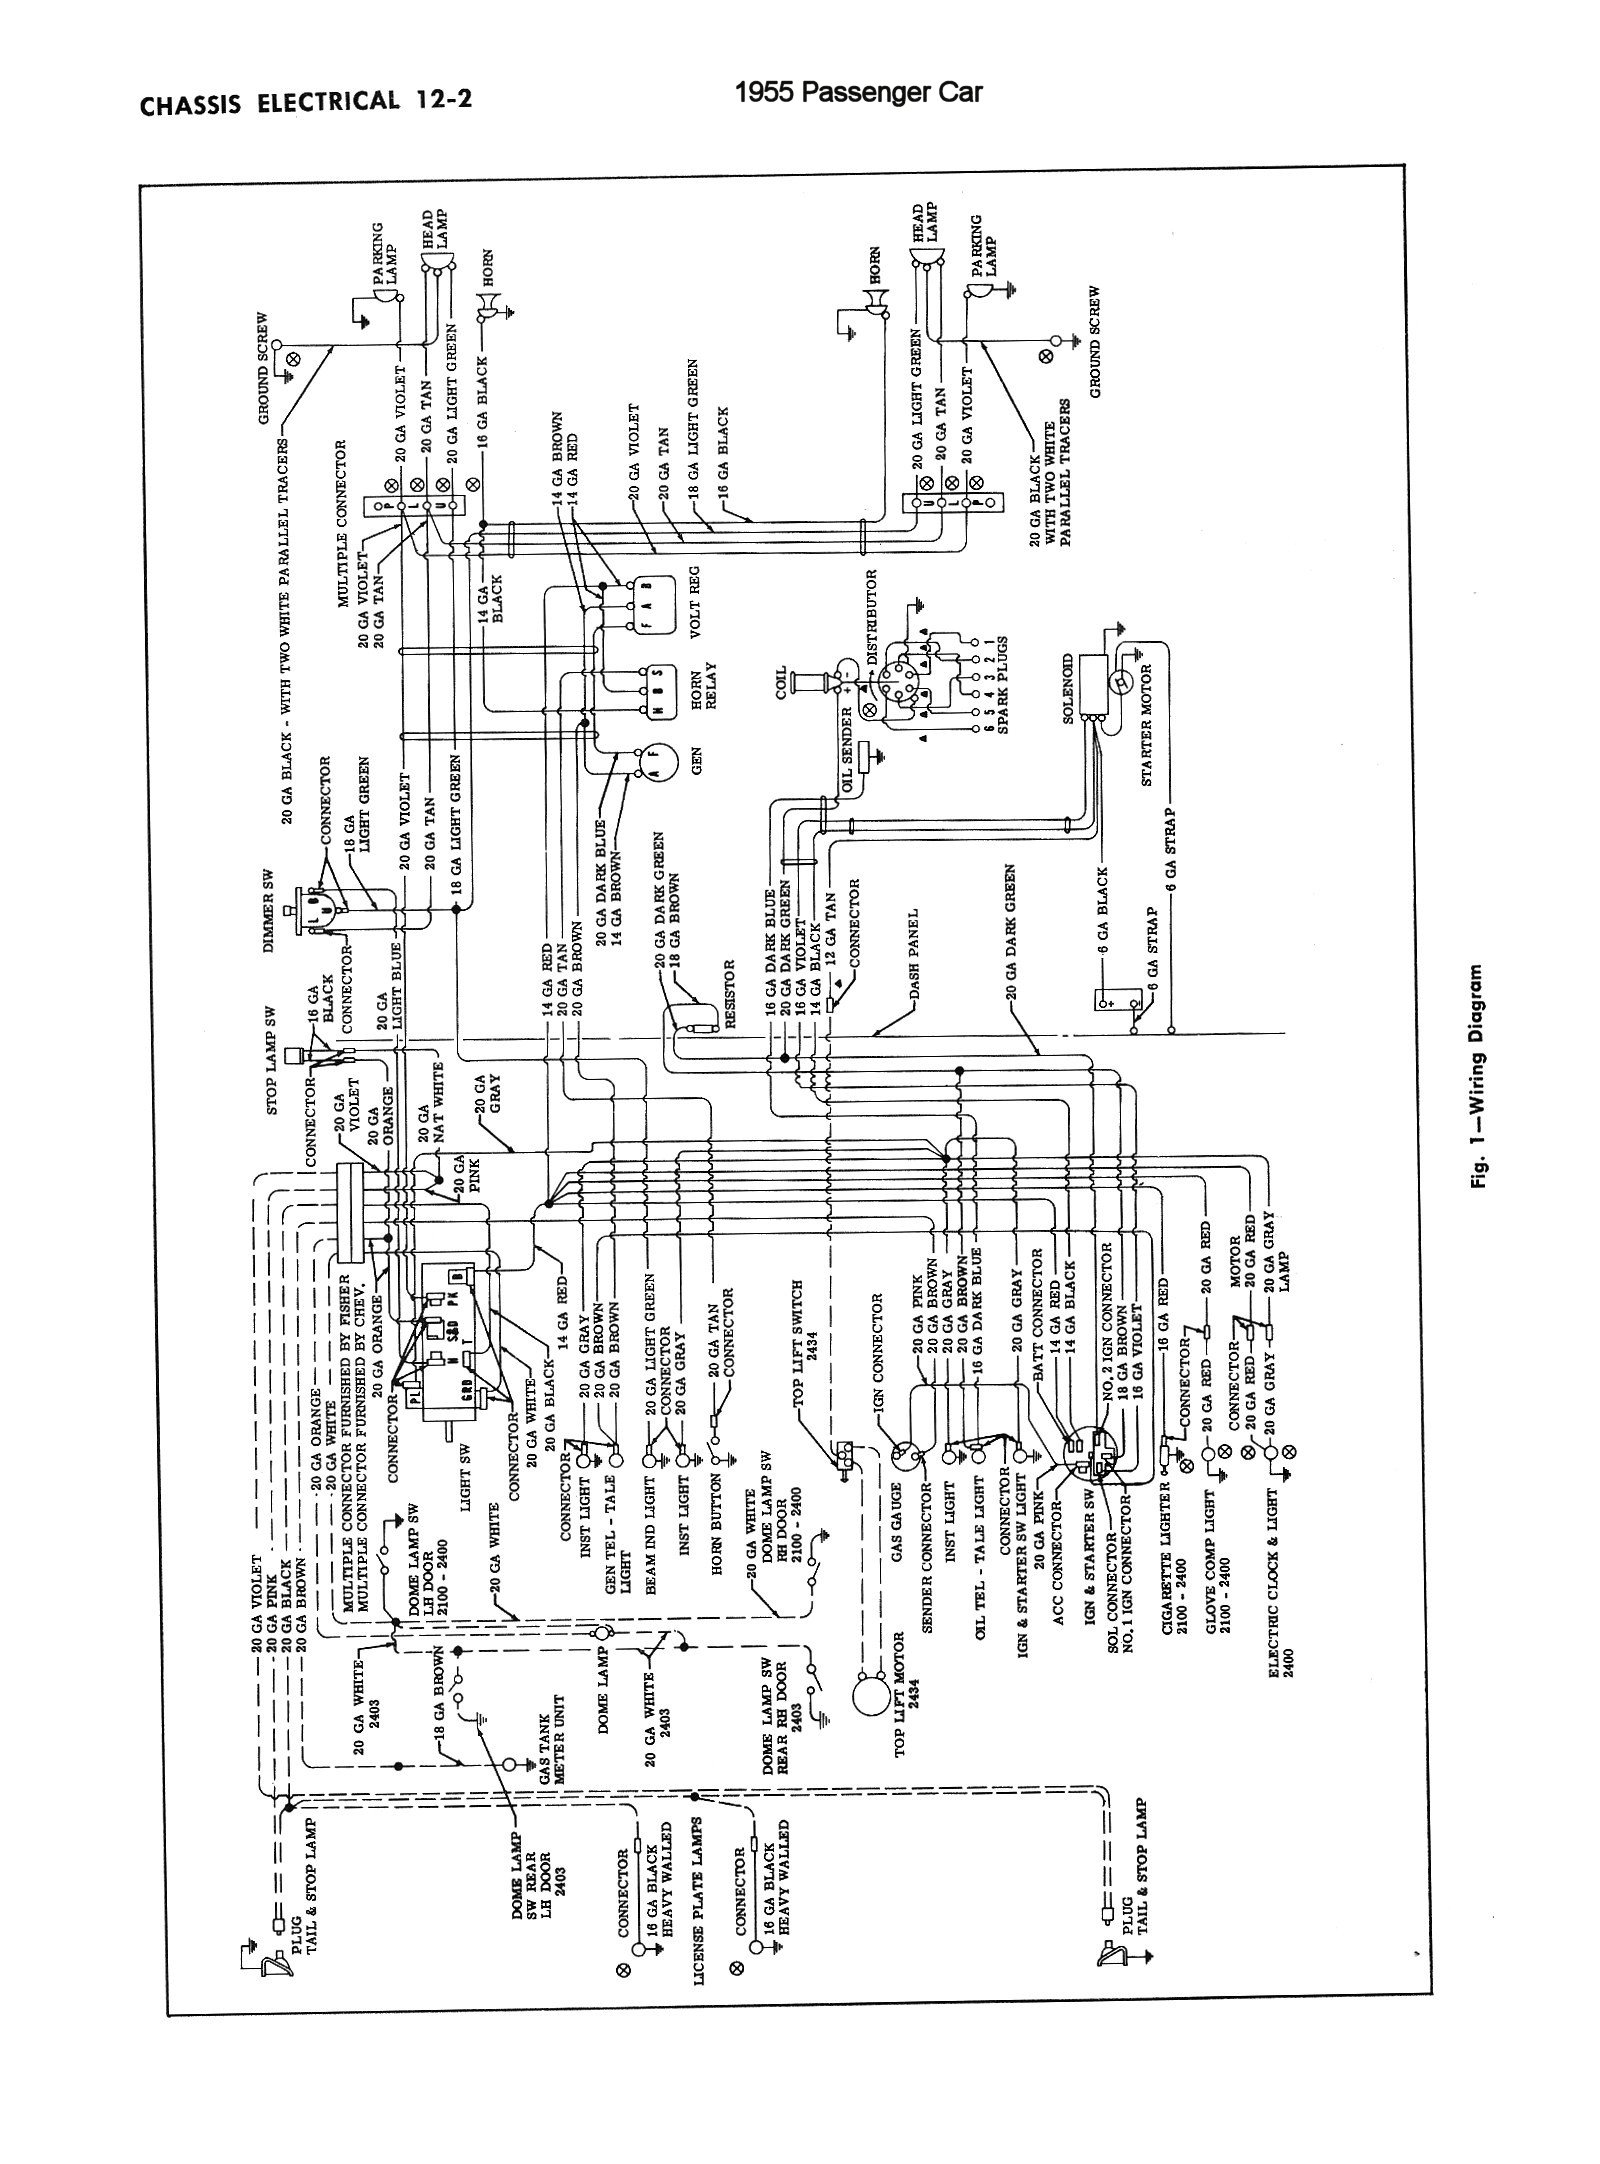 Csm on 1955 Chevy Truck Wiring Diagram